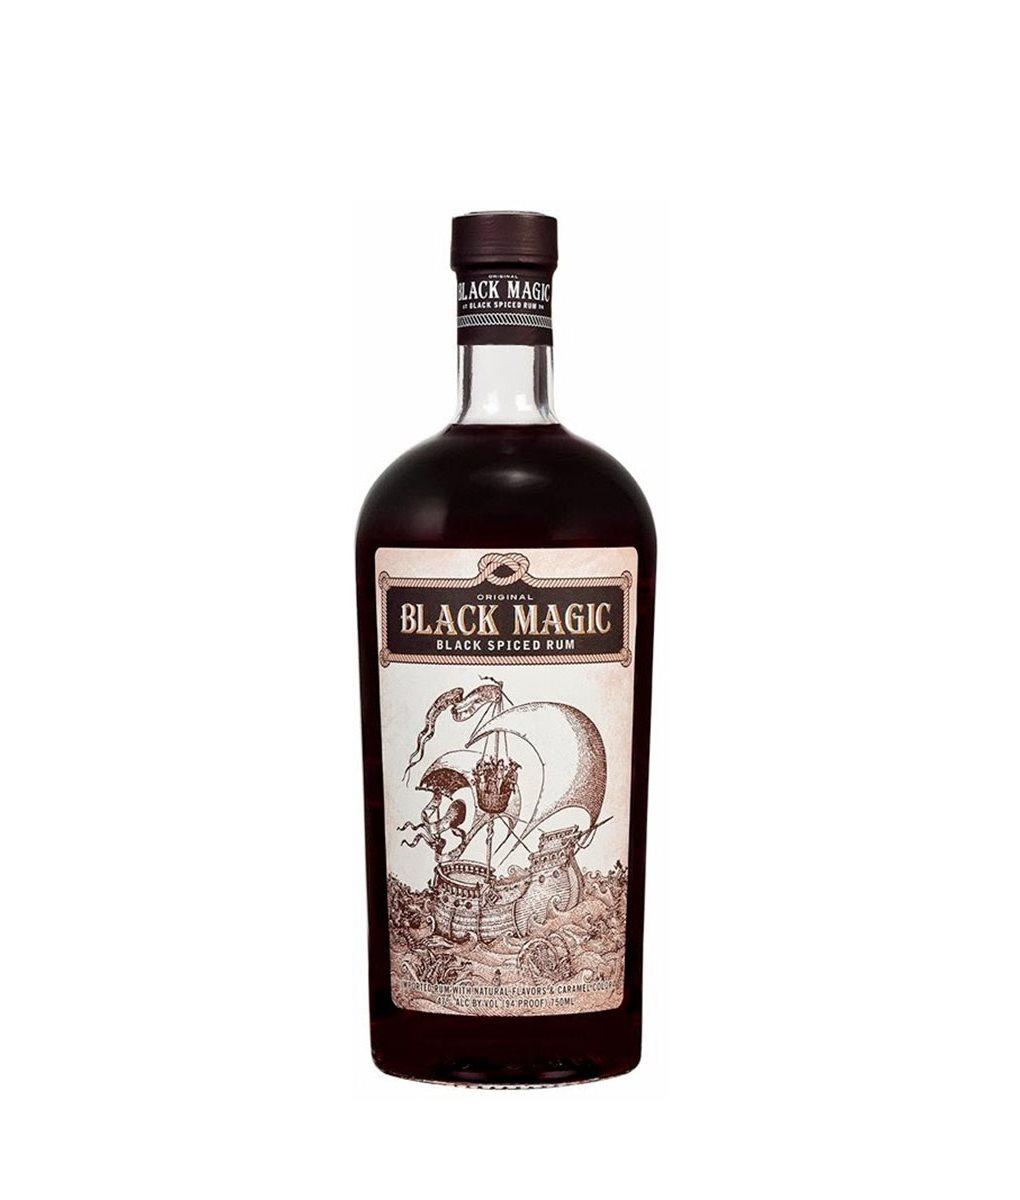 BLACK MAGIC Rhum 40% | Rhum Antillais, Épicé